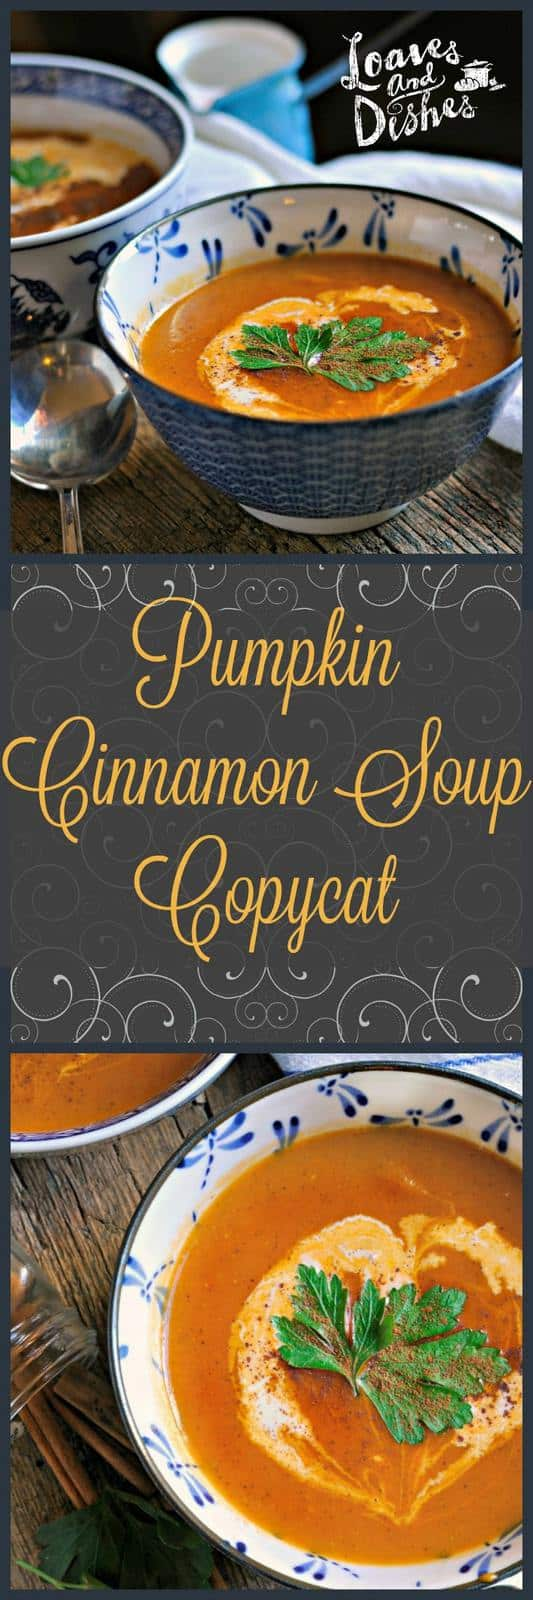 Fine Dining Copycat recipe for Pumpkin Cinnamon Soup. Perfect for your holiday table! www.loavesanddishes.net